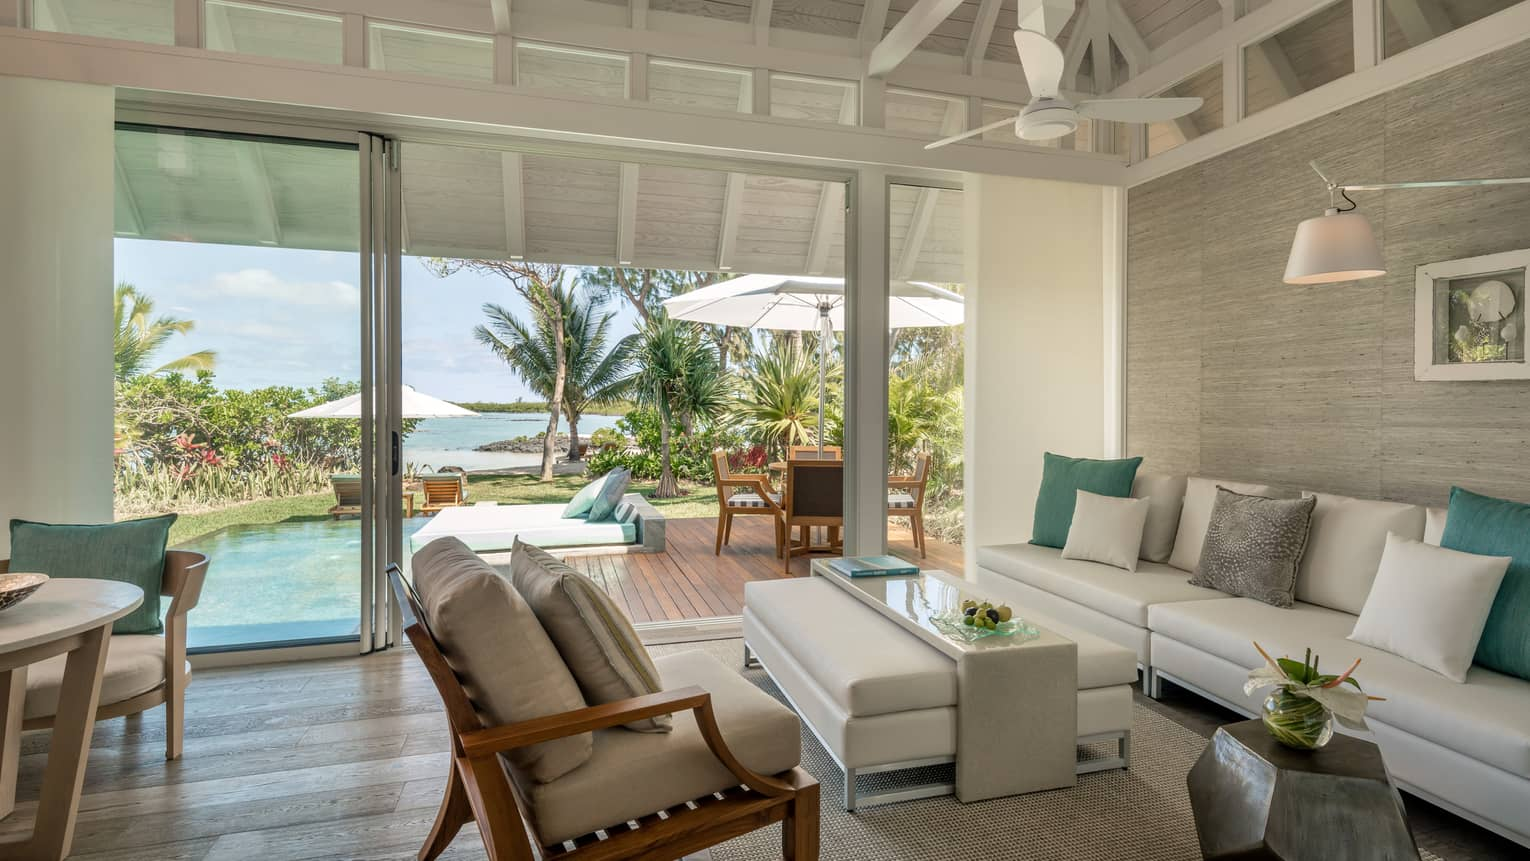 Sanctuary Beach Pool Villa with long white sofa, ottoman, chair, open glass wall to patio